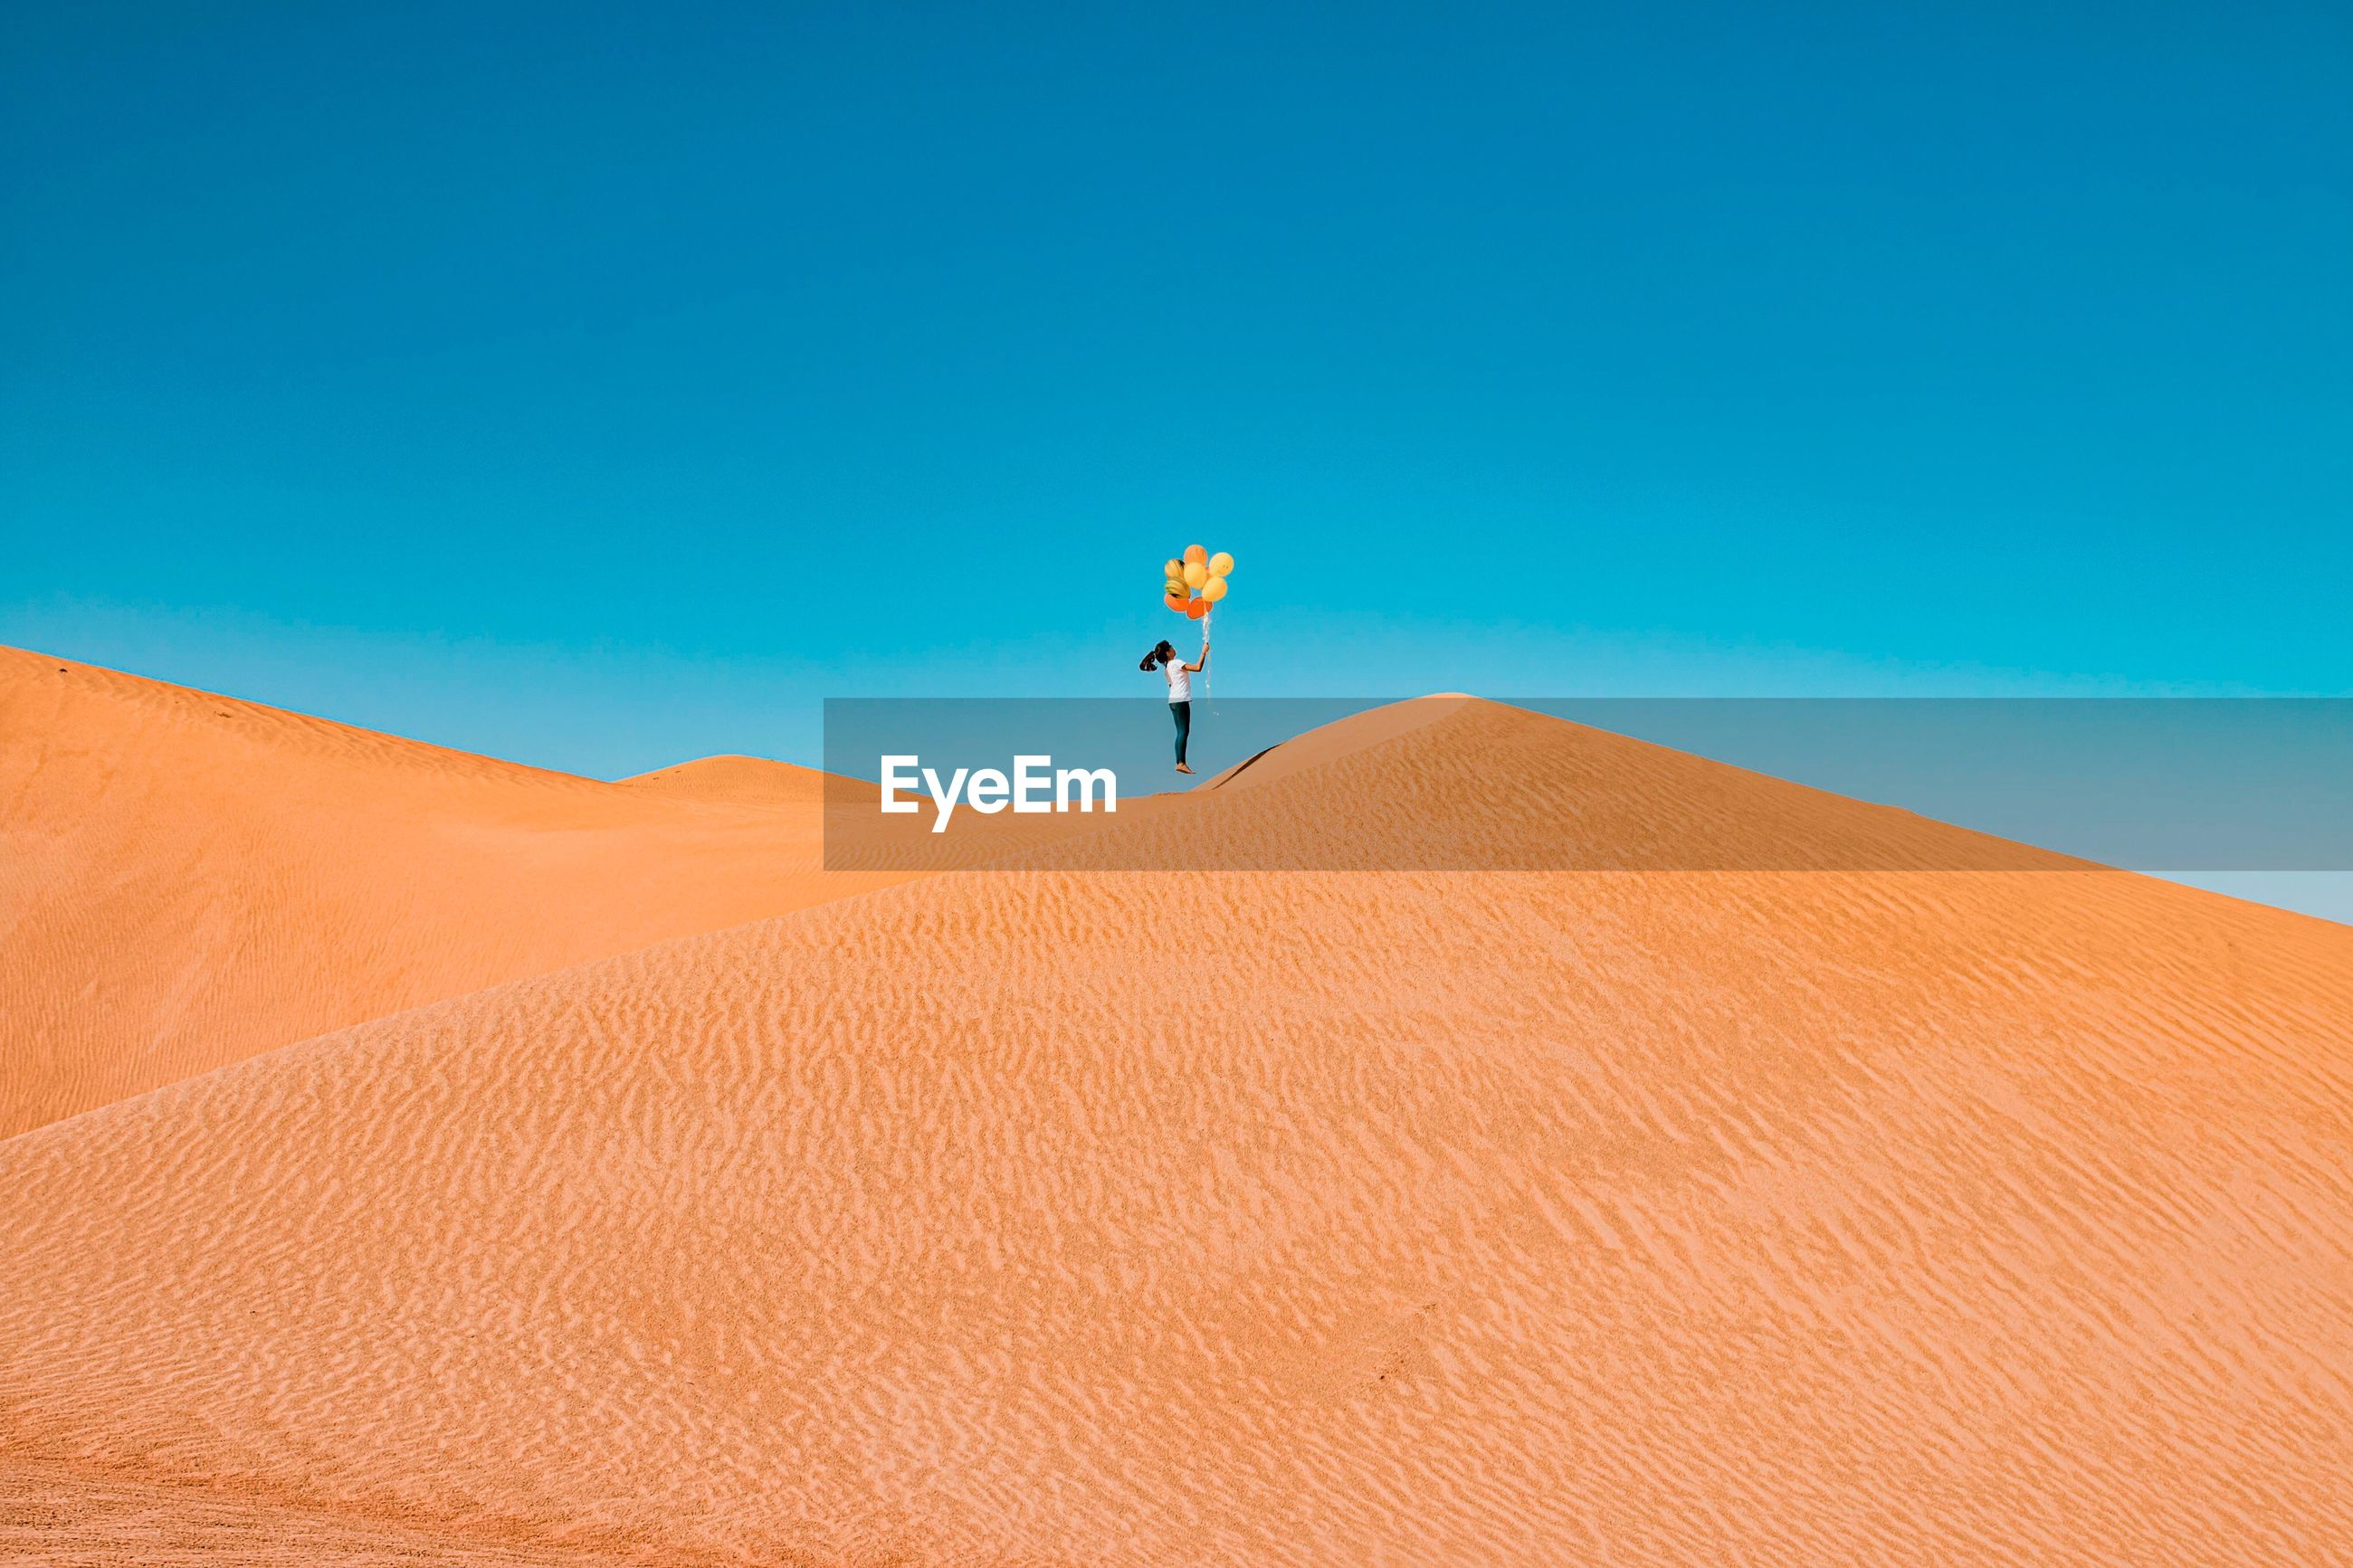 Low angle view of girl holding balloons while jumping on sand dune at desert